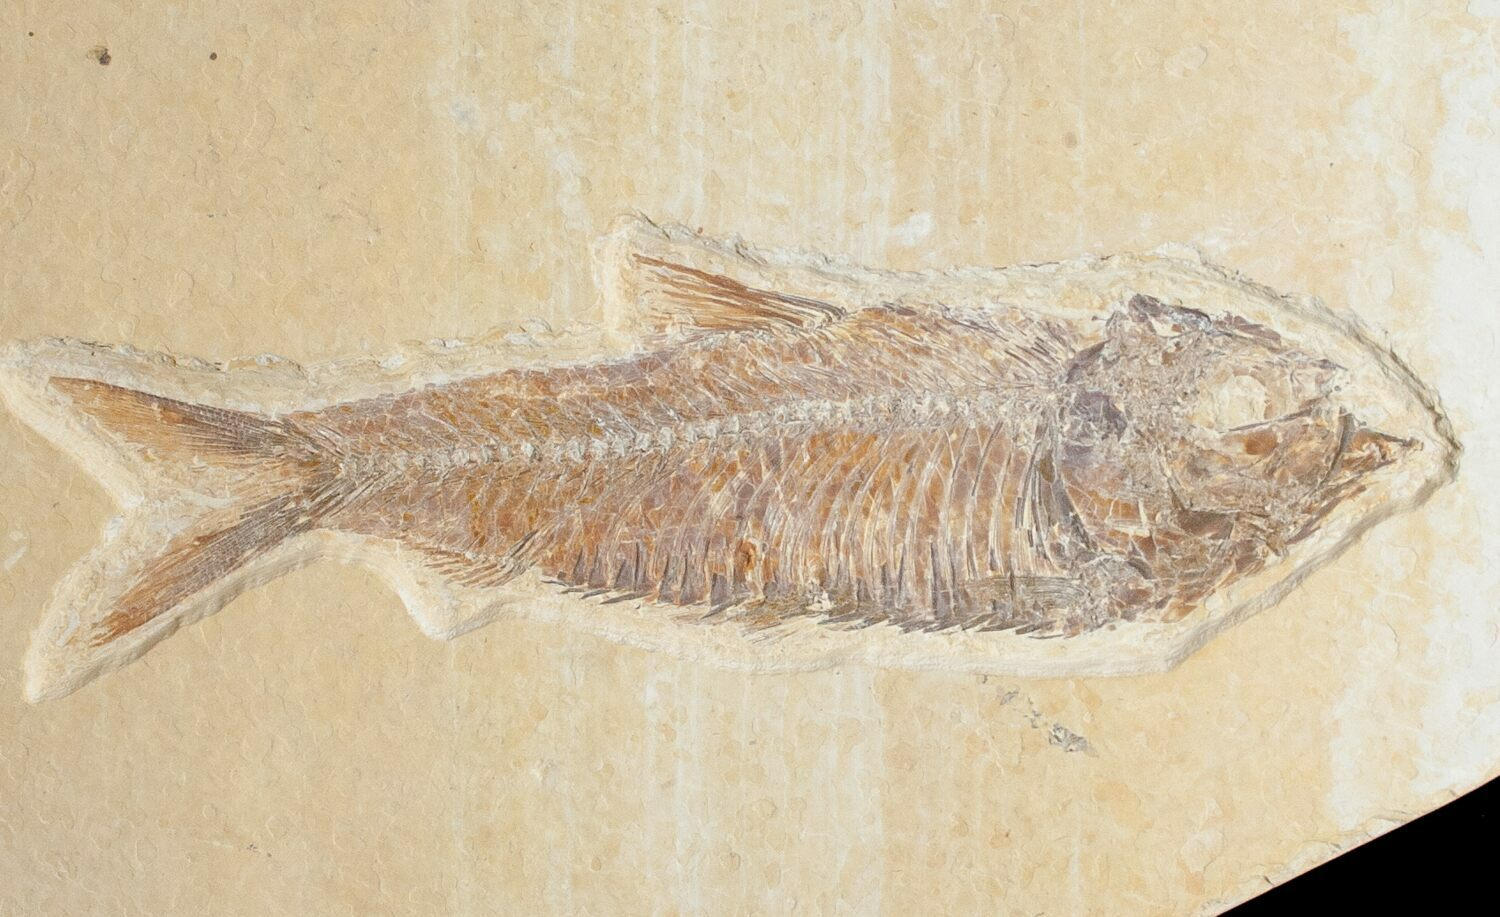 Diplomystus knightia fossil fish plate for sale 10895 for Fish fossils for sale